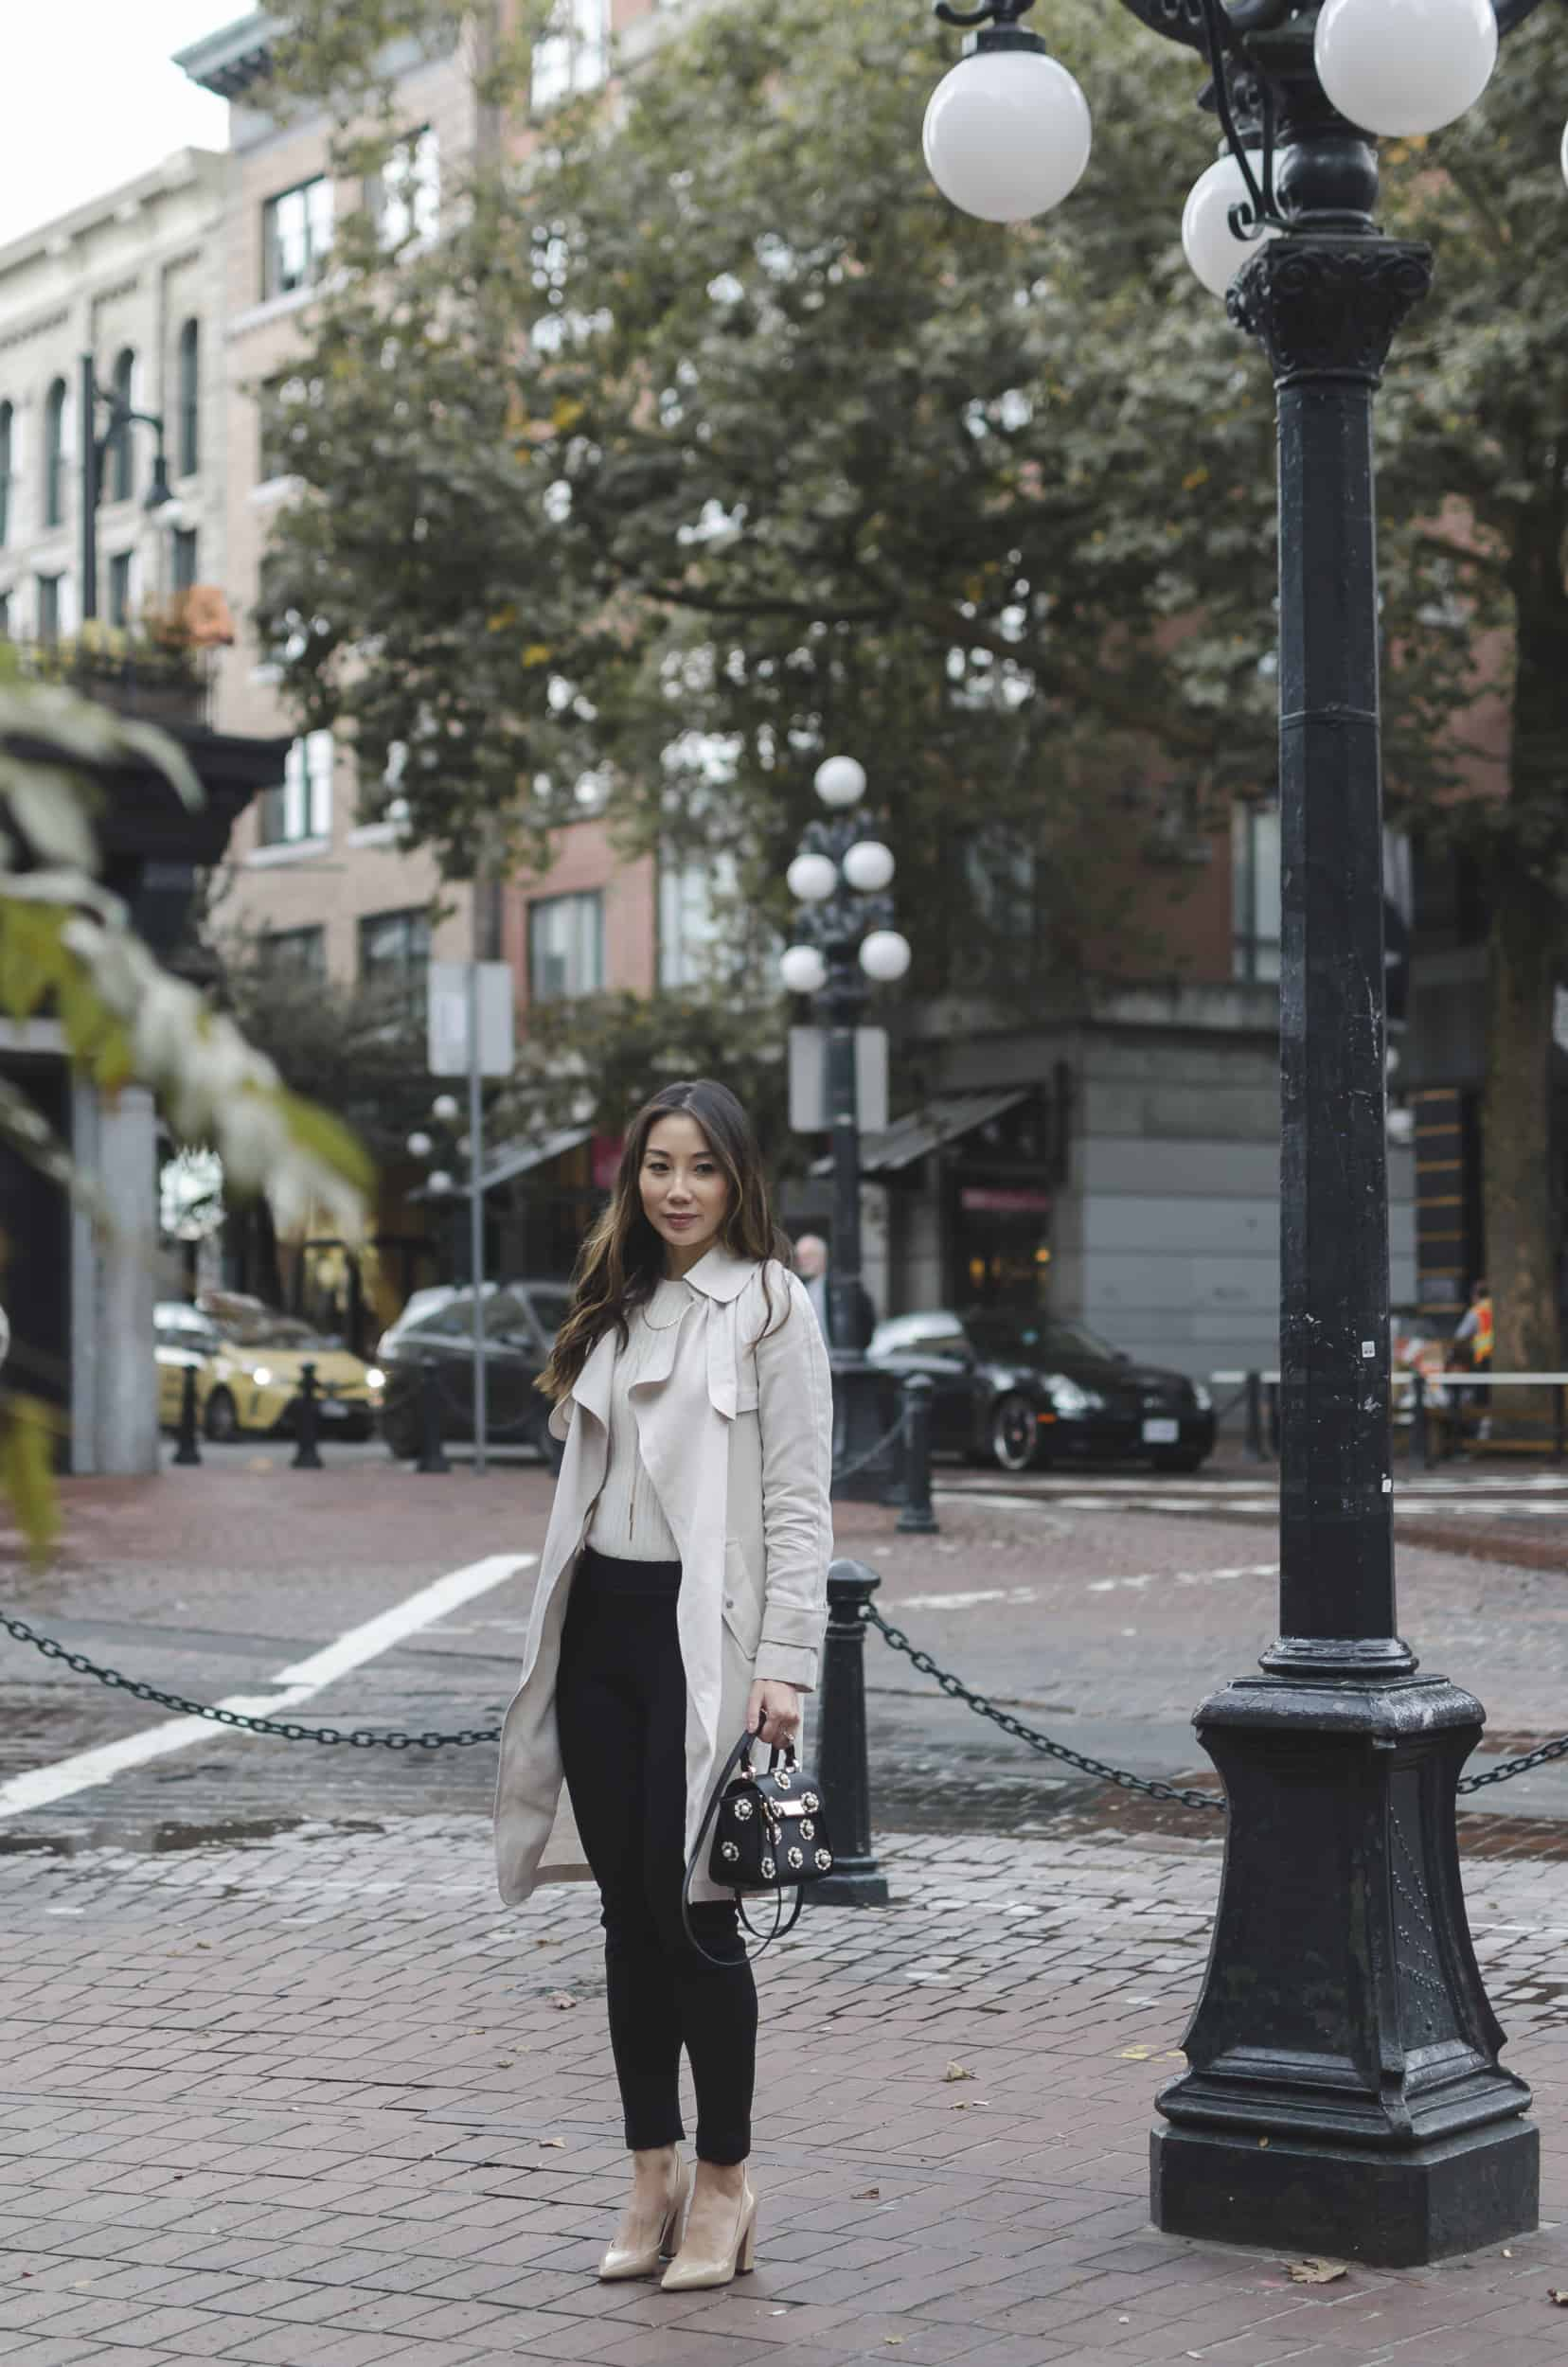 Fashion blogger YesMissy! Wearing Artizia trench, Zara pants, Zac Posen bag